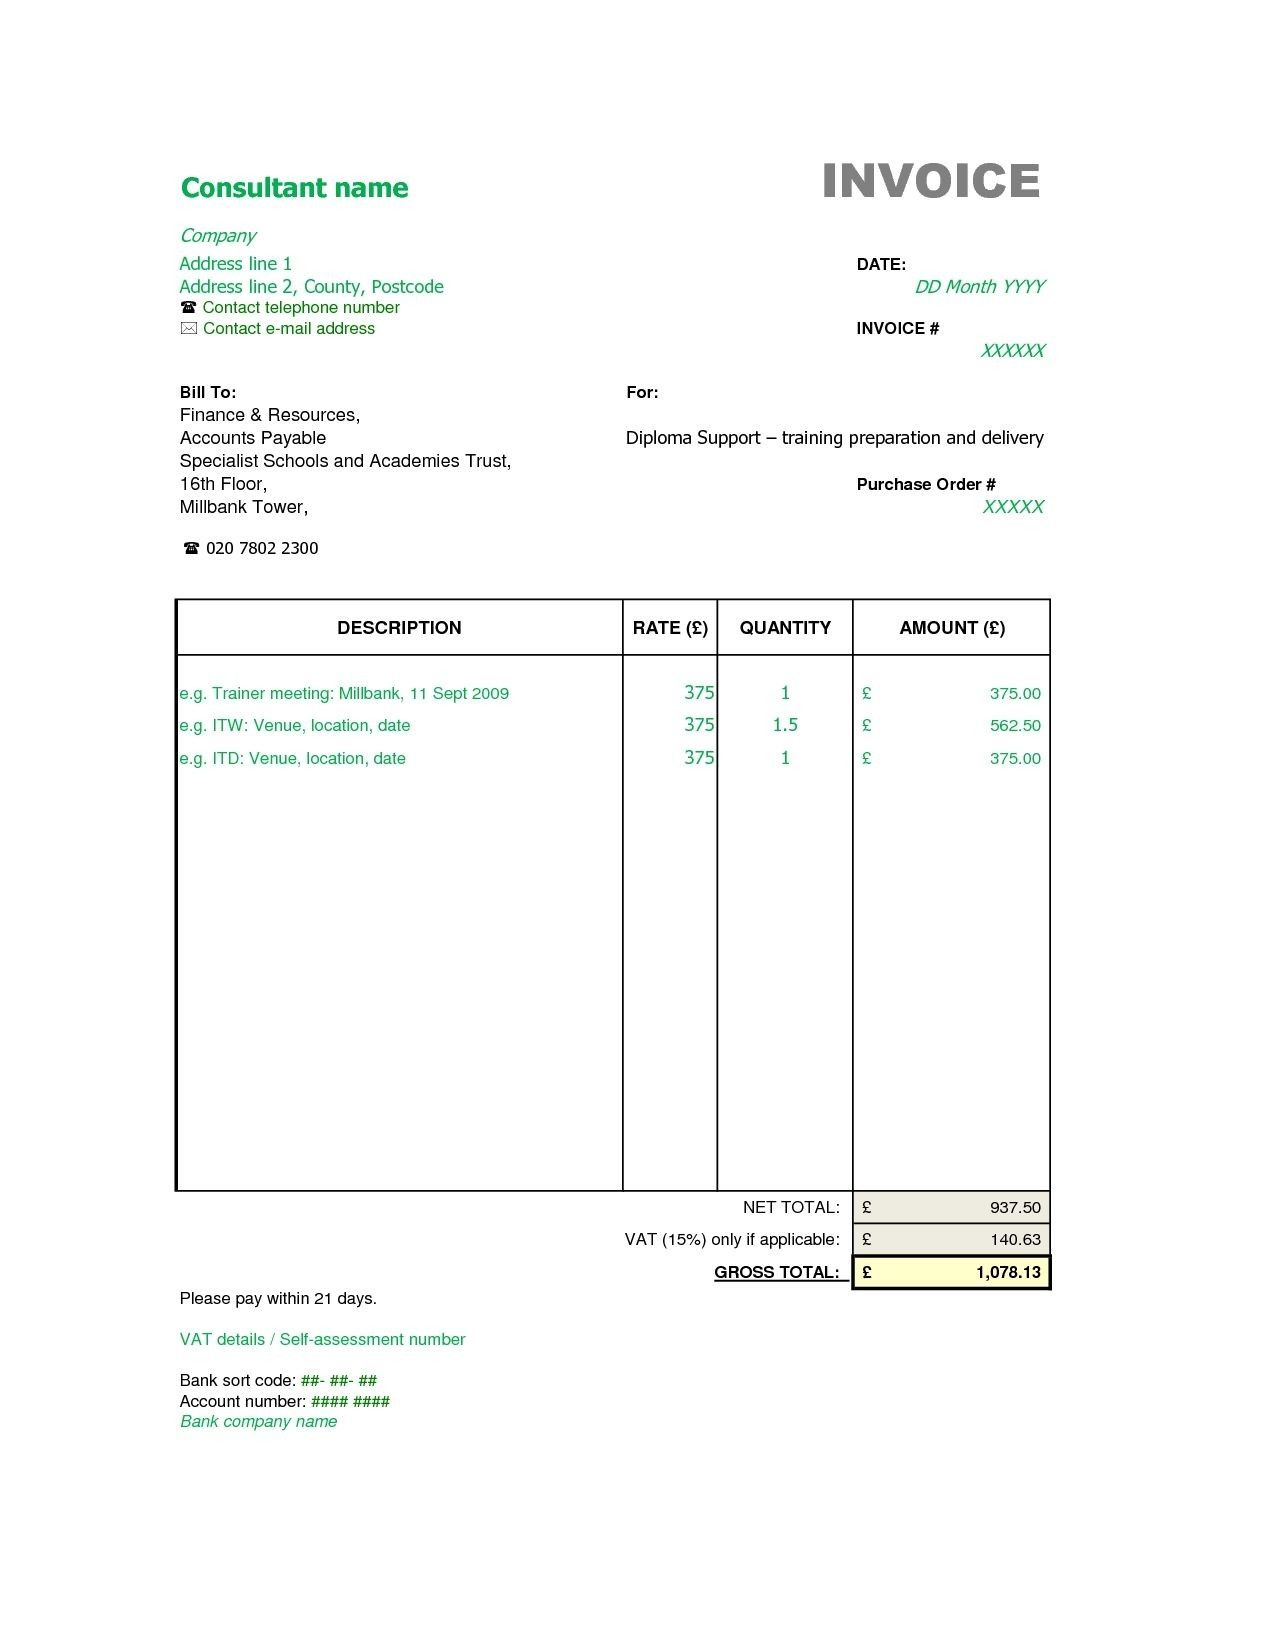 Unique Sample Invoice Excel #exceltemplate #xls #xlstemplate